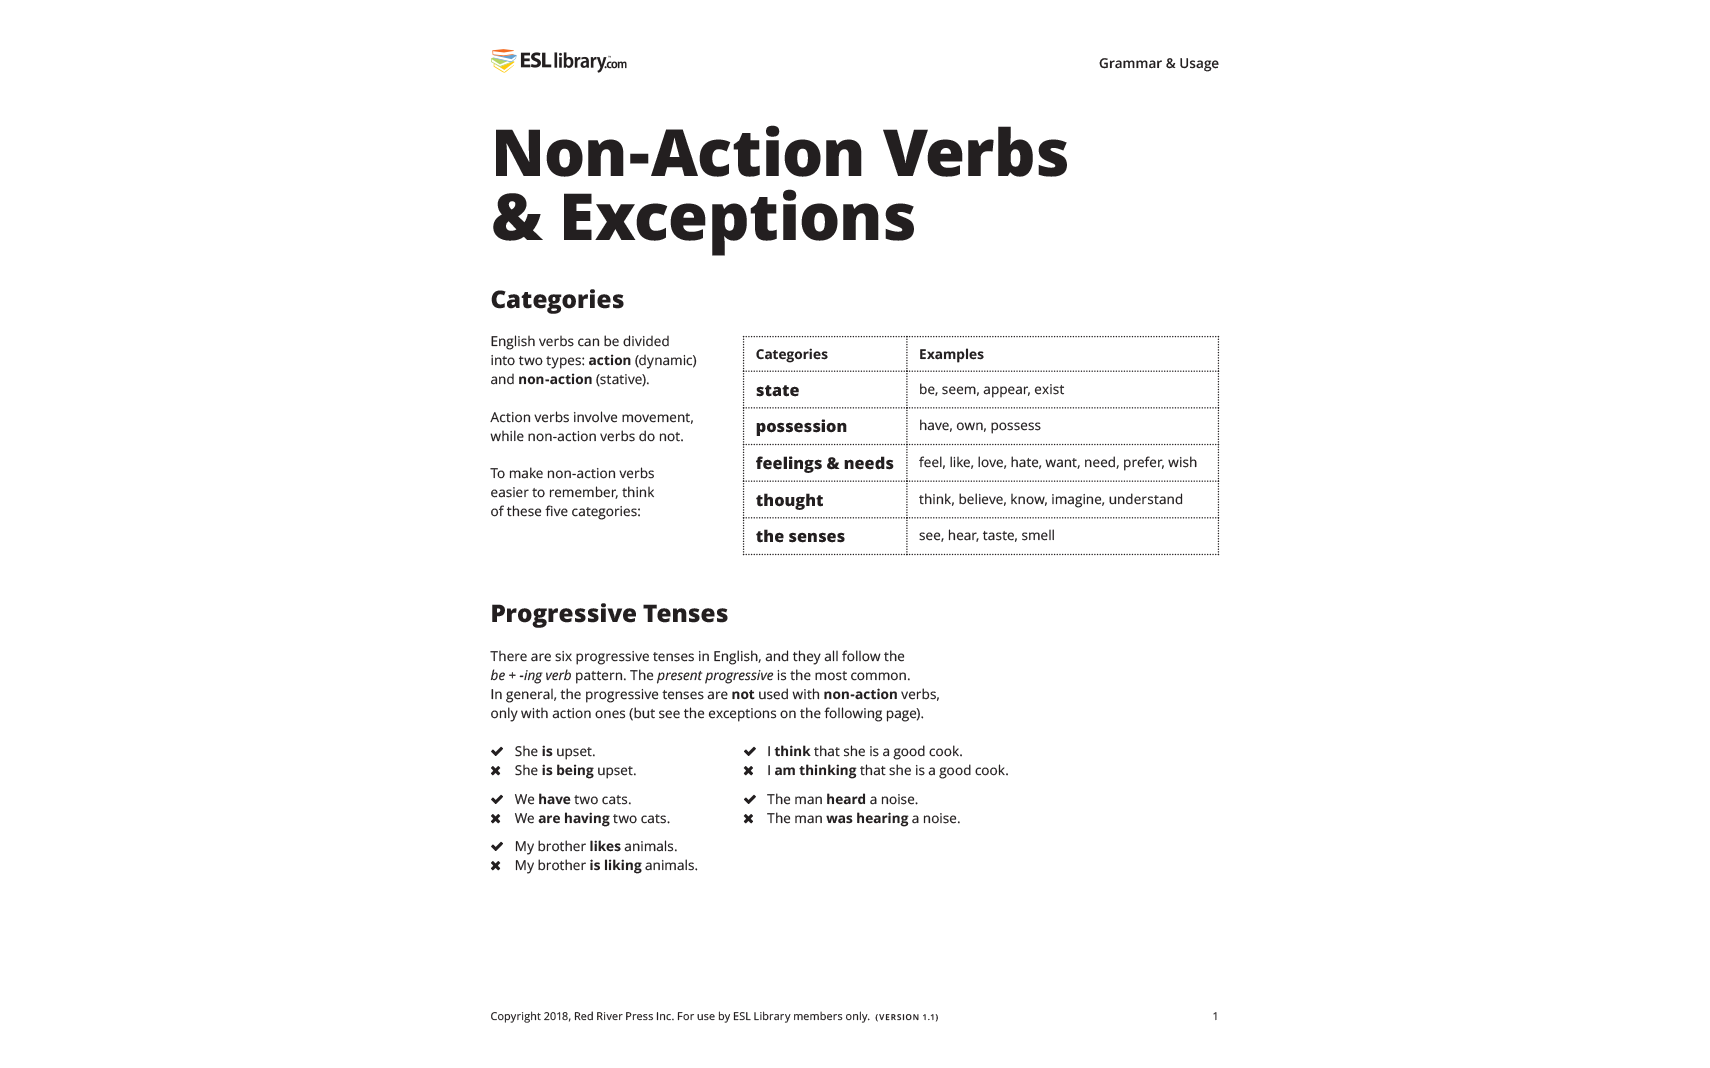 Non-Action Verbs and Exceptions Resource